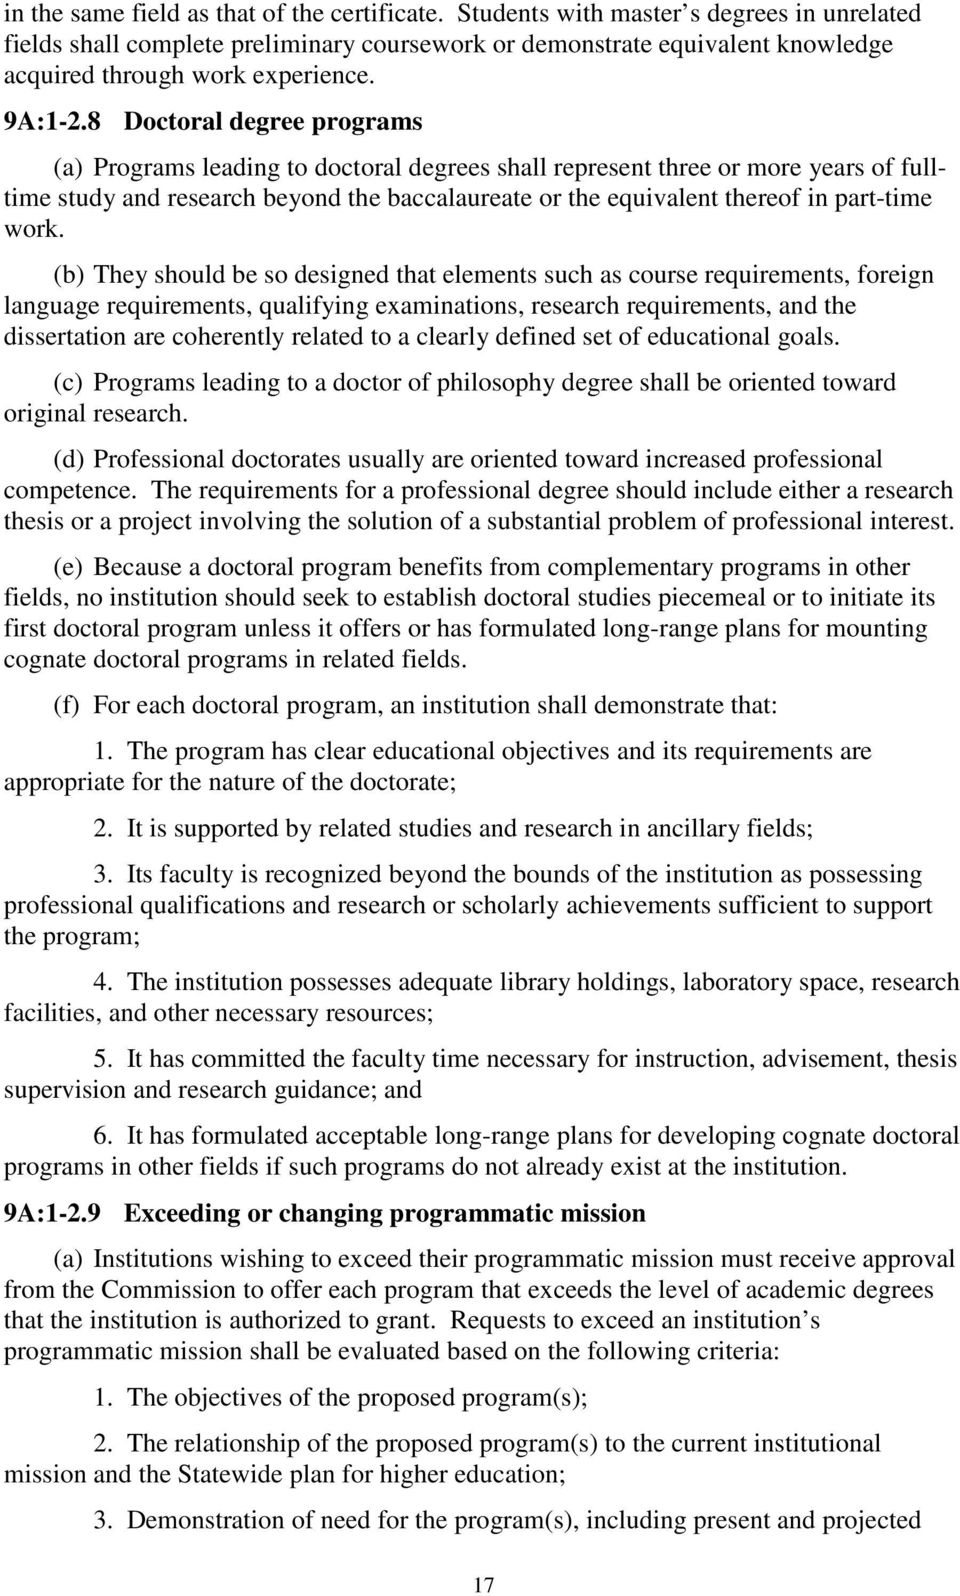 8 Doctoral degree programs (a) Programs leading to doctoral degrees shall represent three or more years of fulltime study and research beyond the baccalaureate or the equivalent thereof in part-time